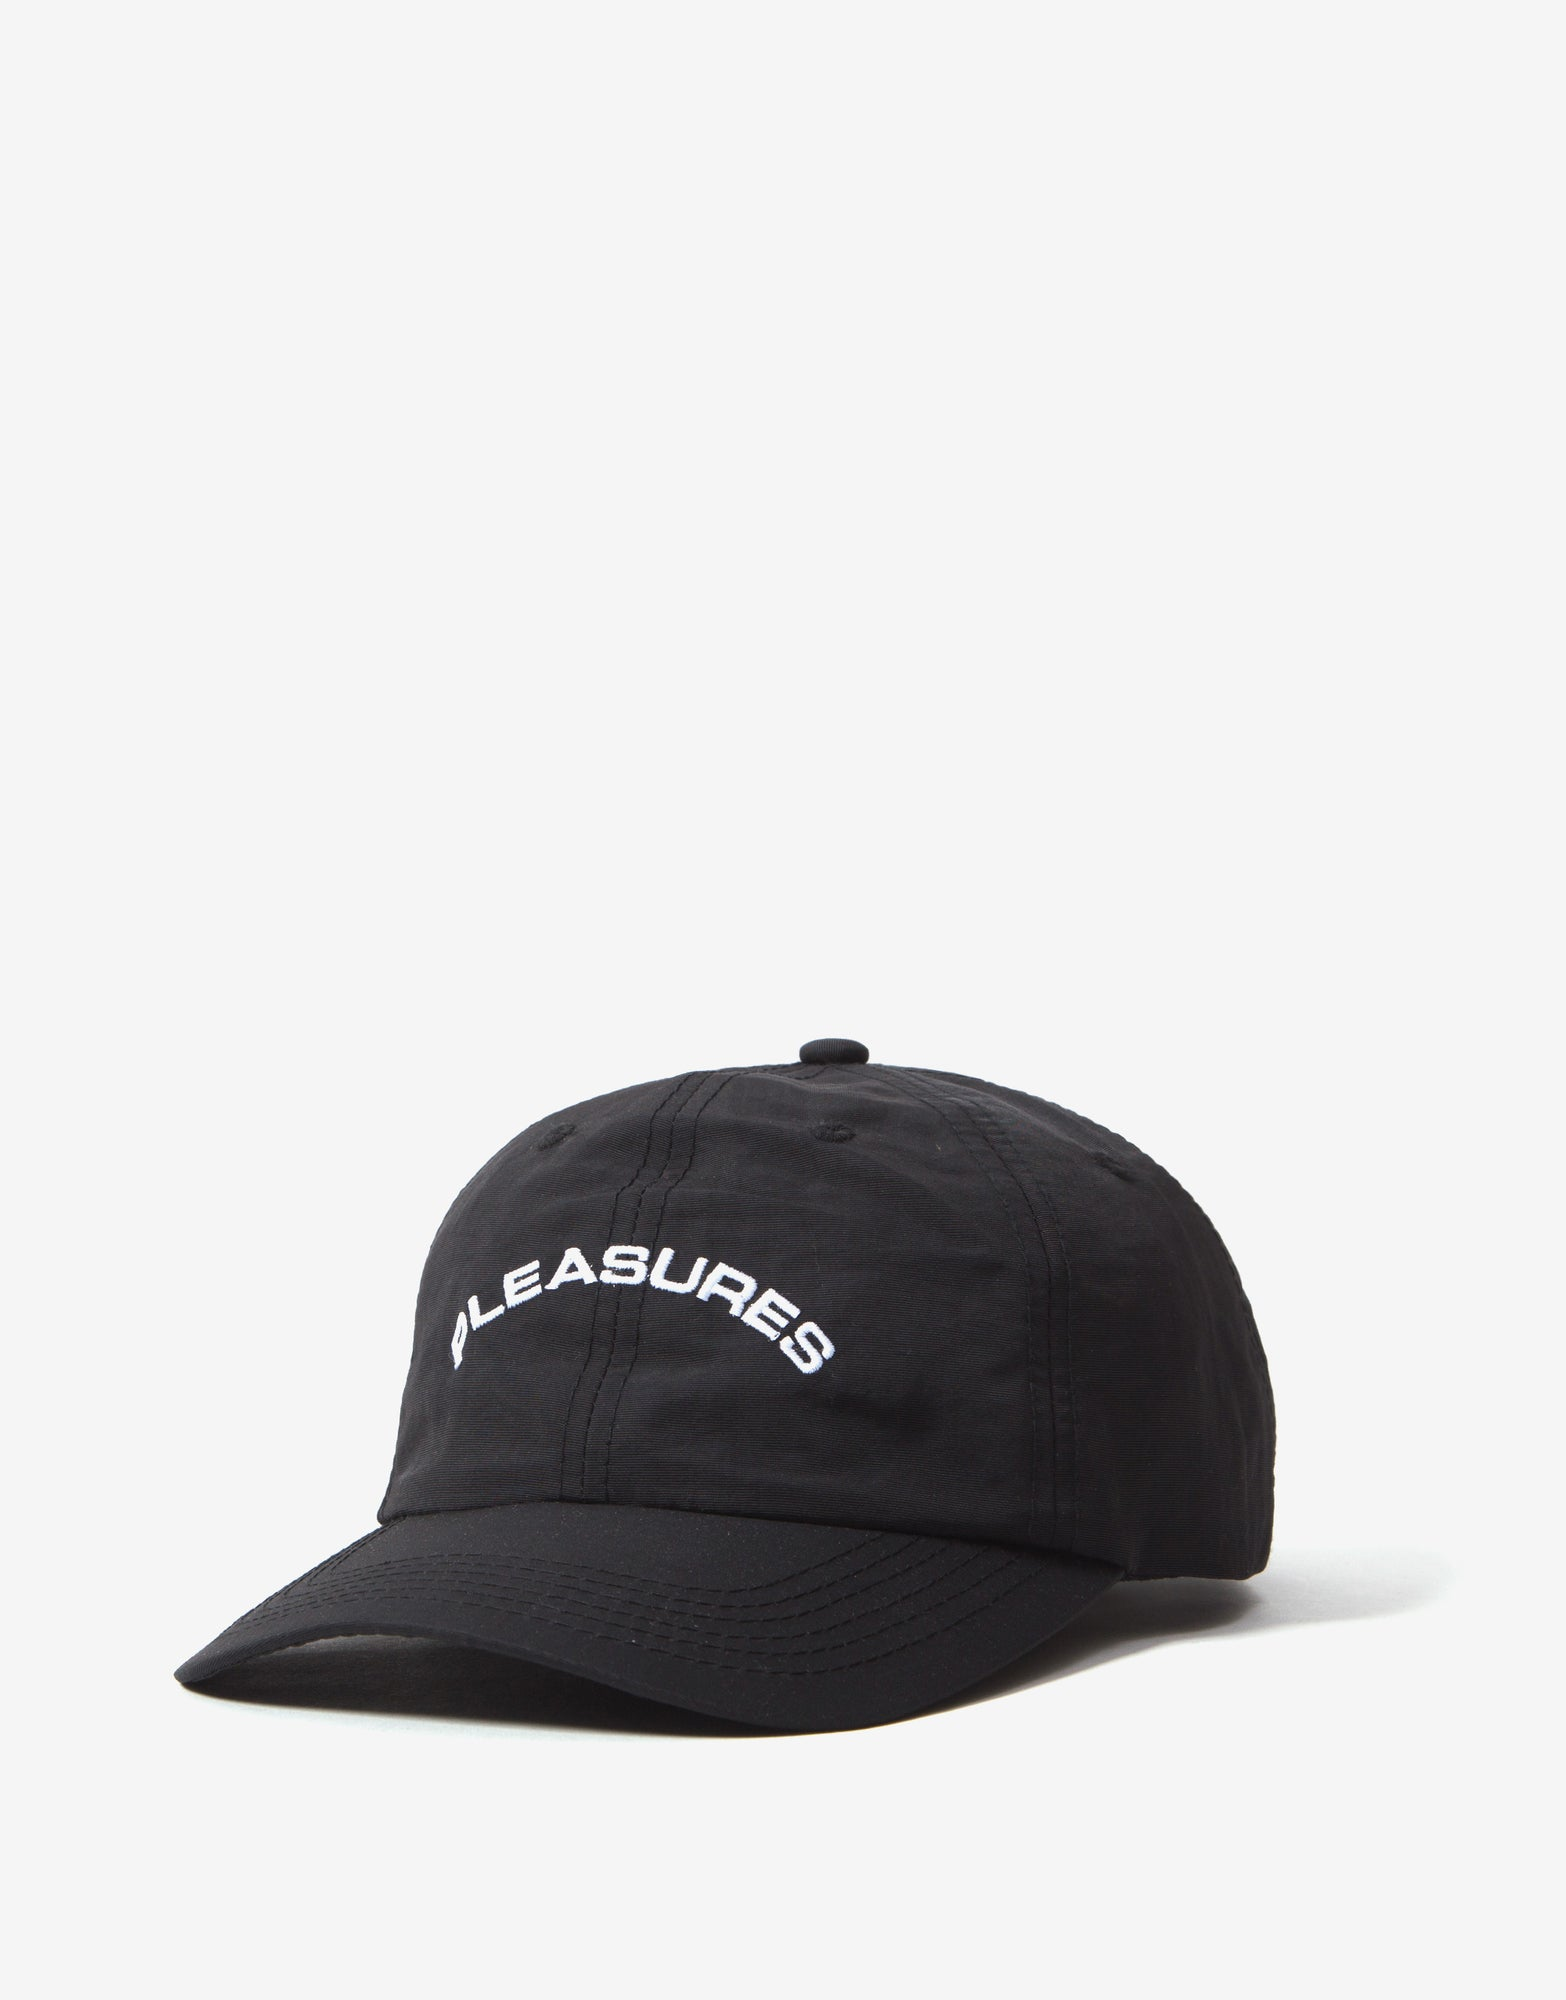 Pleasures Destiny Nylon Polo Cap - Black